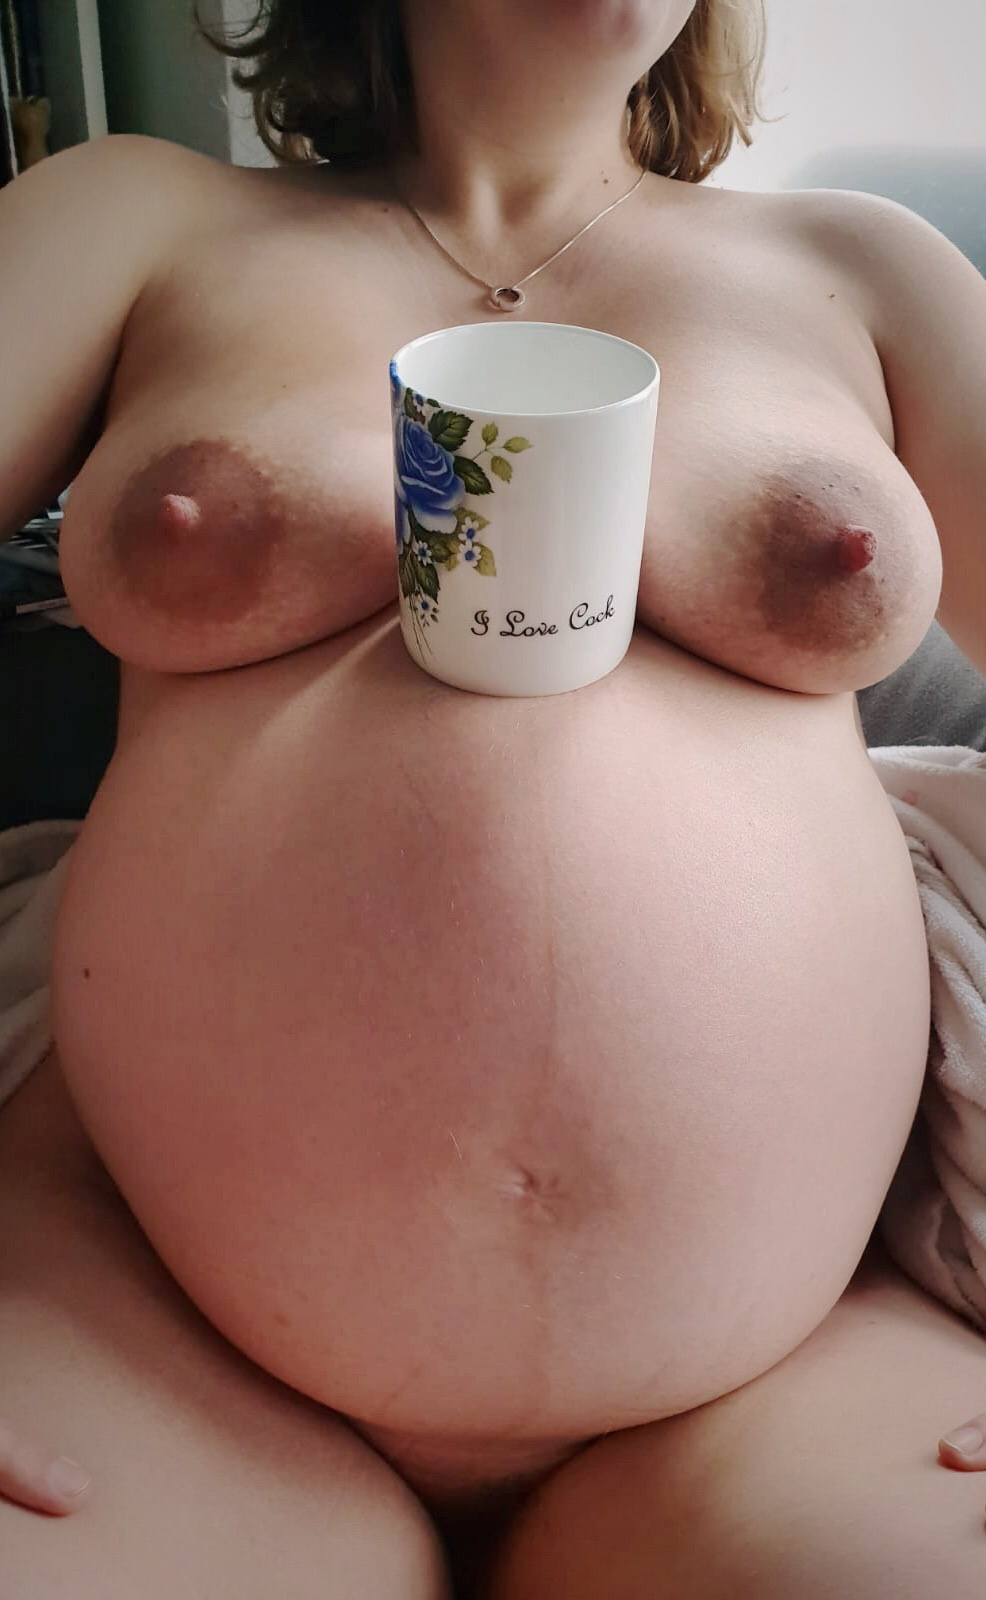 My naked 39 week pregnant torso with a tea cup that has 'I love cock' written in it balanced between my breasts